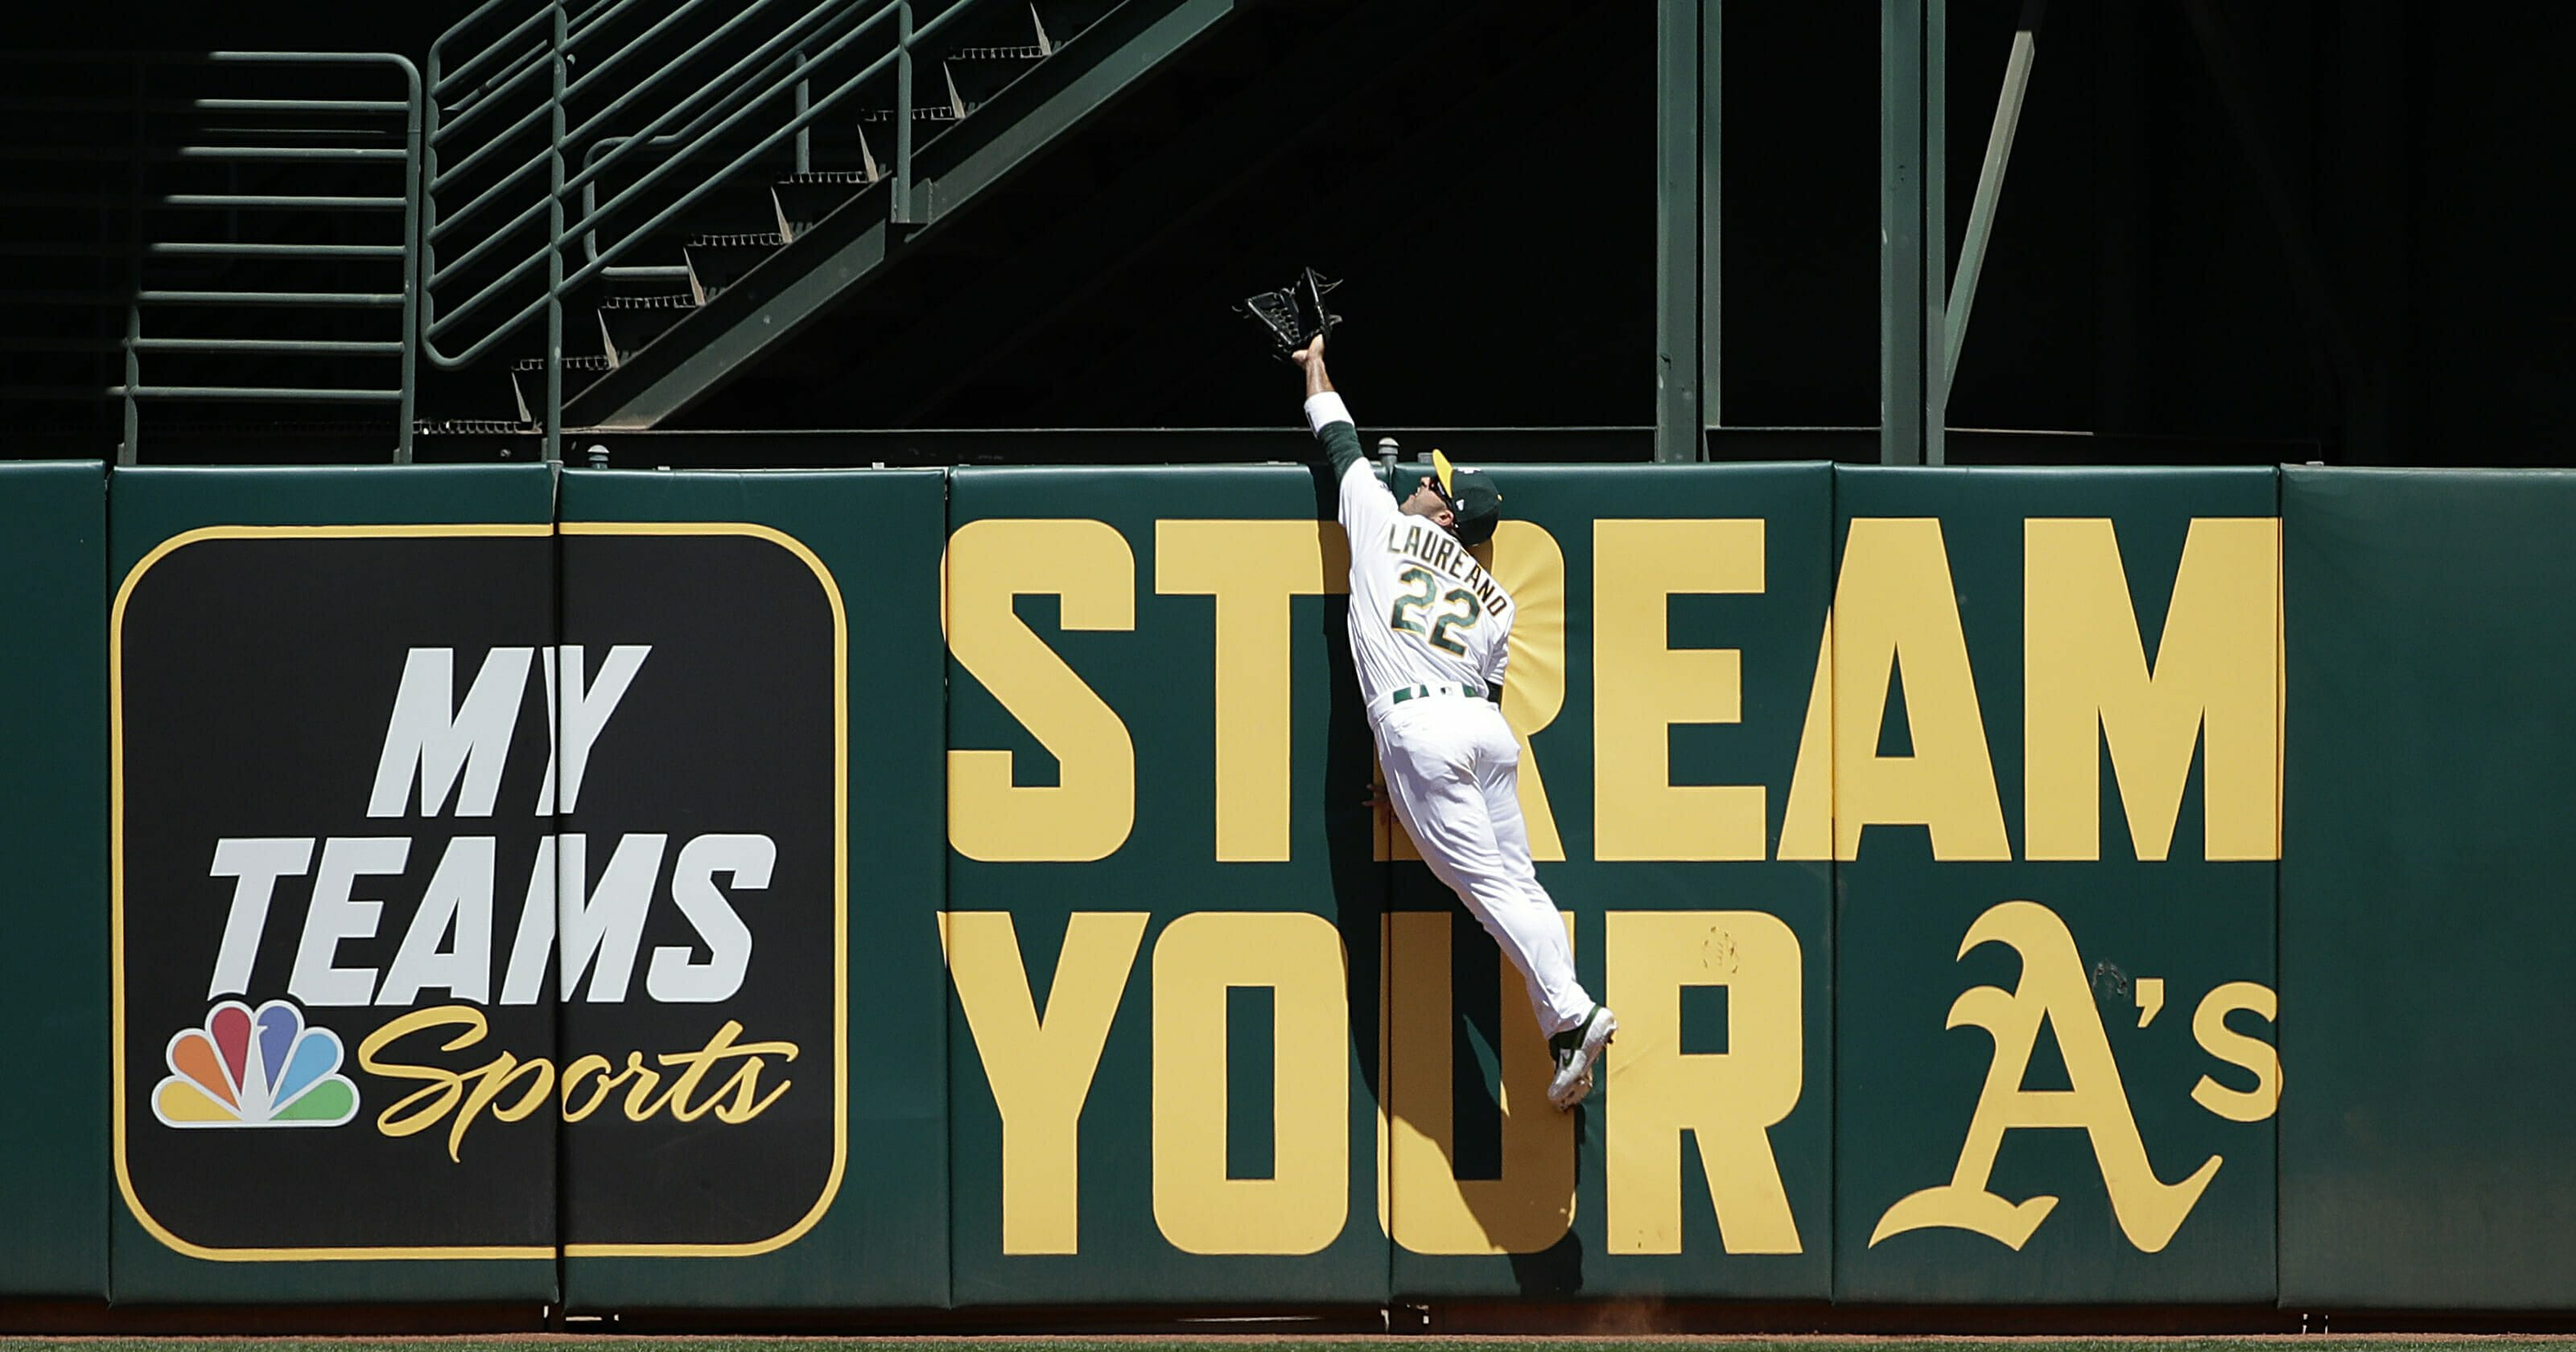 Oakland Athletics center fielder Ramon Laureano jumps to catch a fly ball hit by Toronto Blue Jays' Teoscar Hernandez during the second inning of a baseball game in Oakland, Calif., Sunday, April 21, 2019.